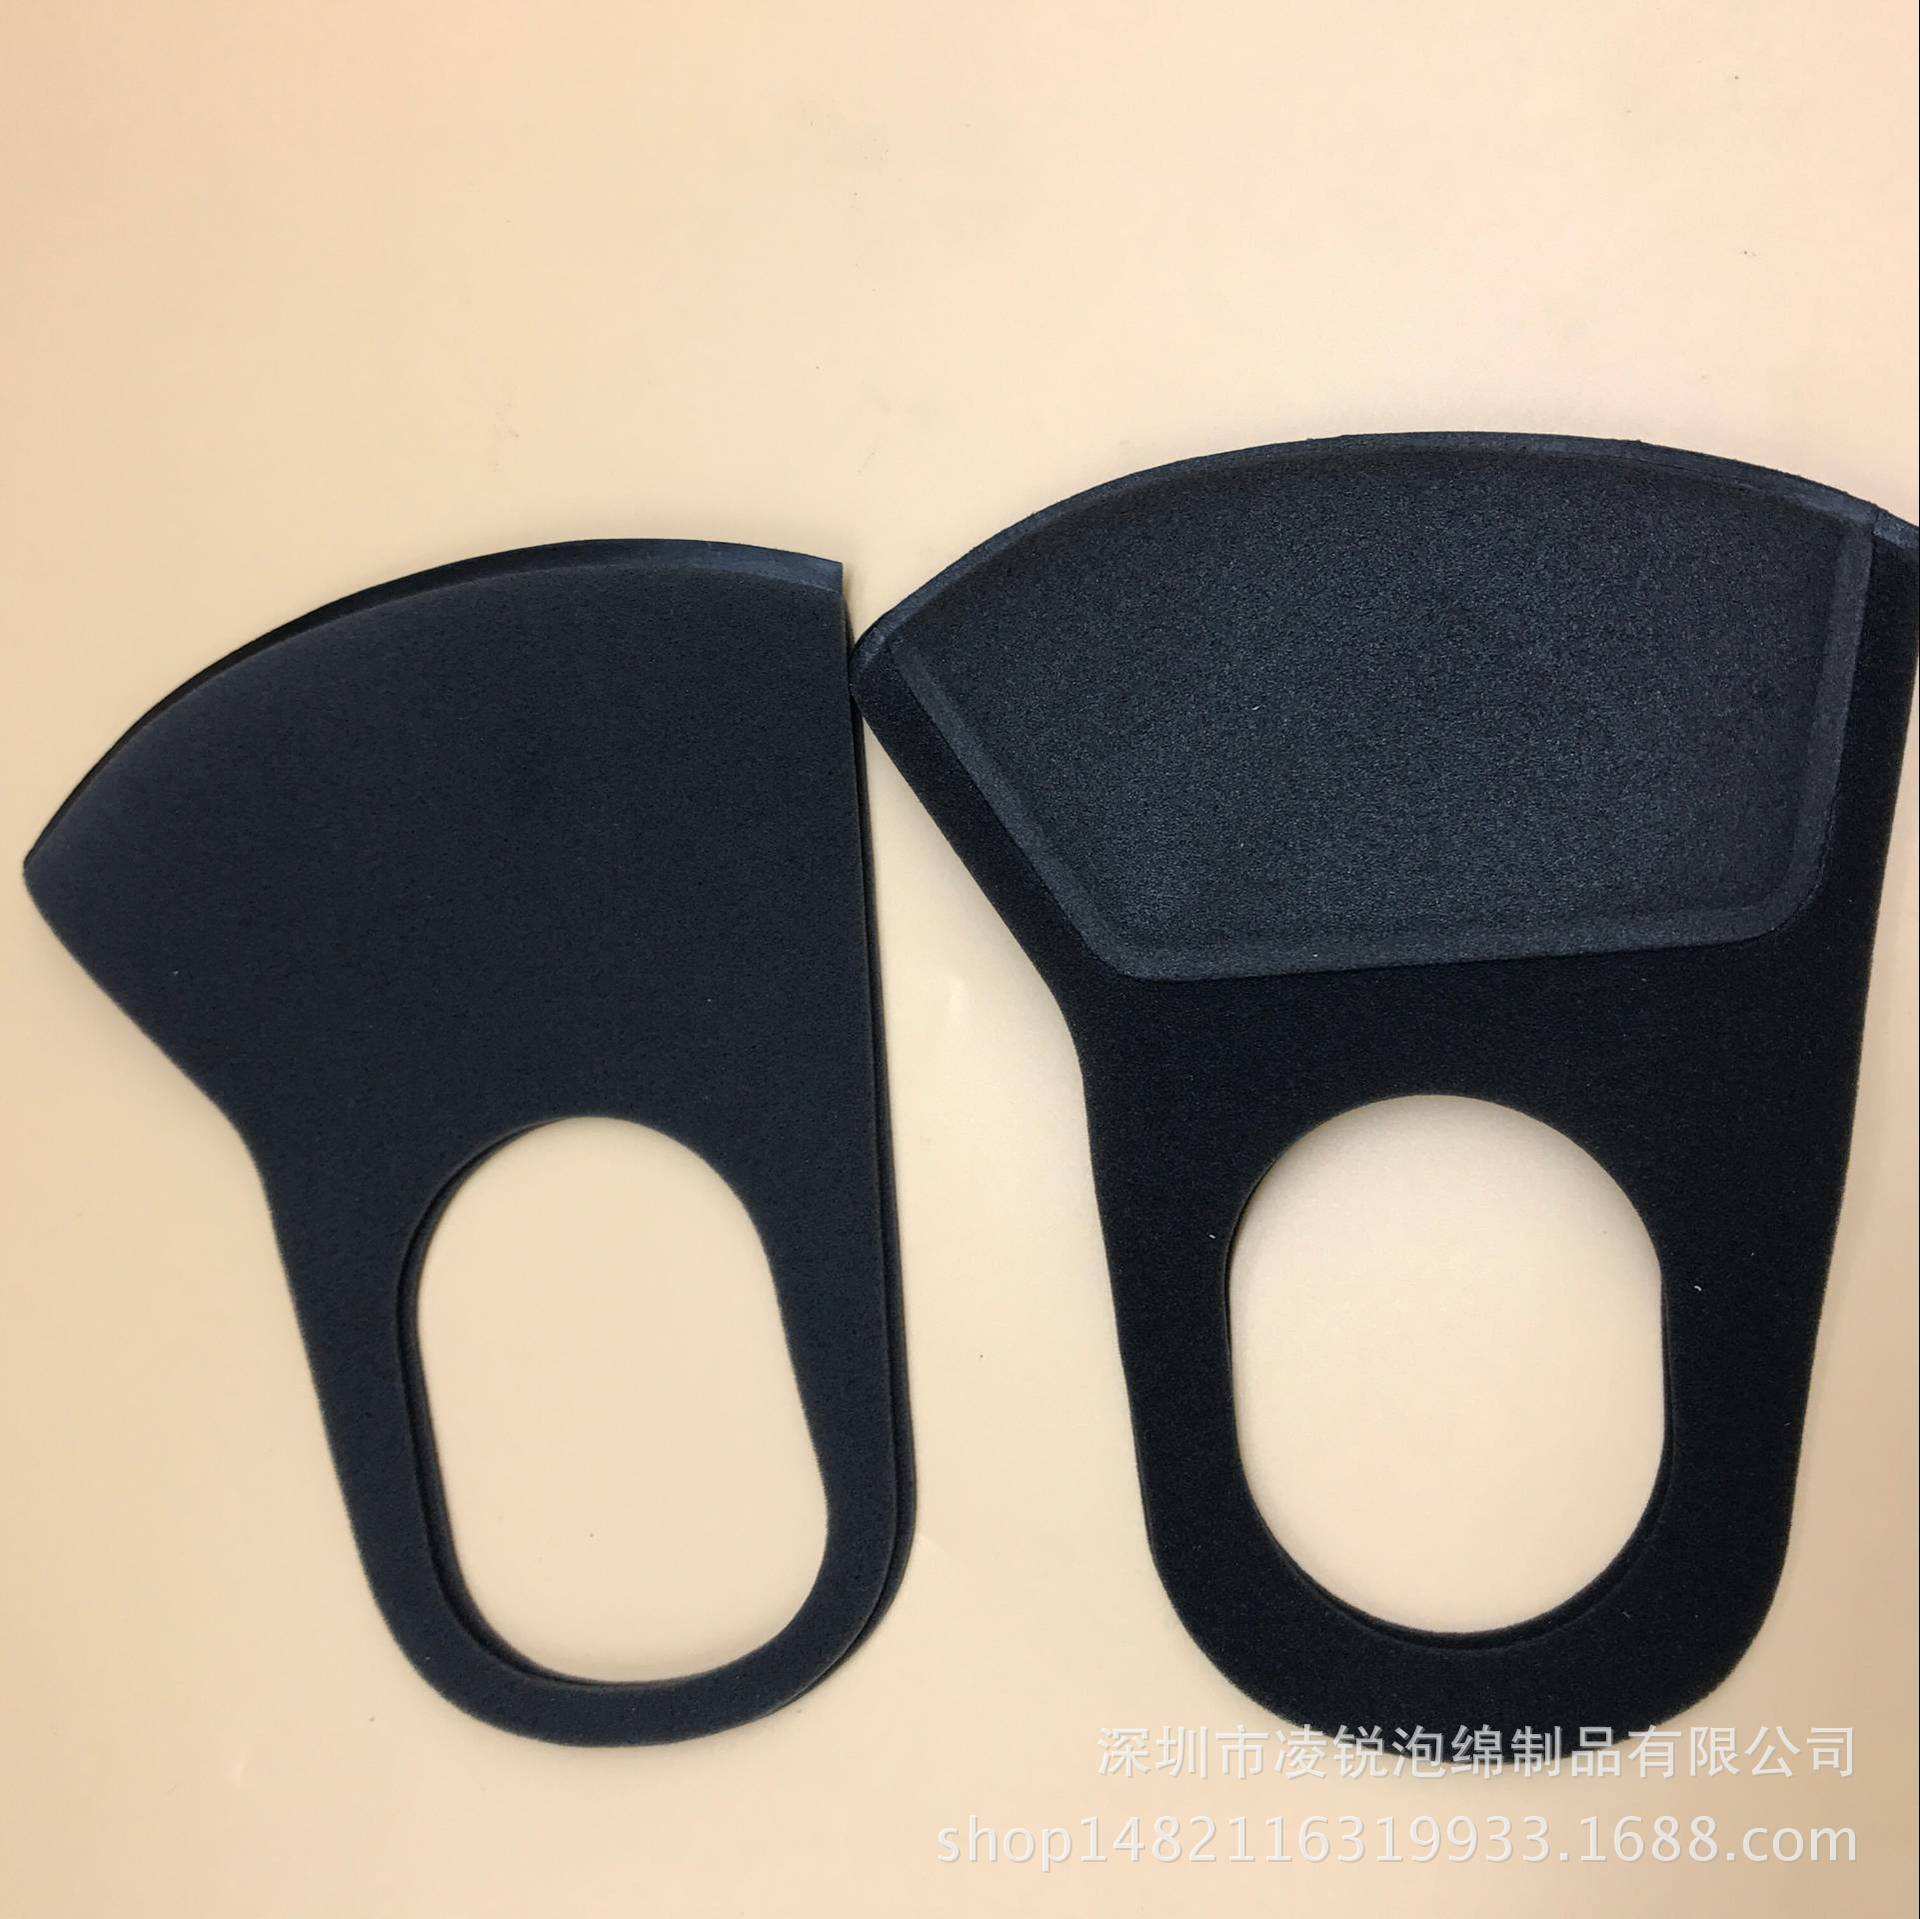 Factory Currently Available Wholesale Haze-resistant Mask Industrial Dust Respirator Sponge Face Mask Activated Carbon Gauze Mas